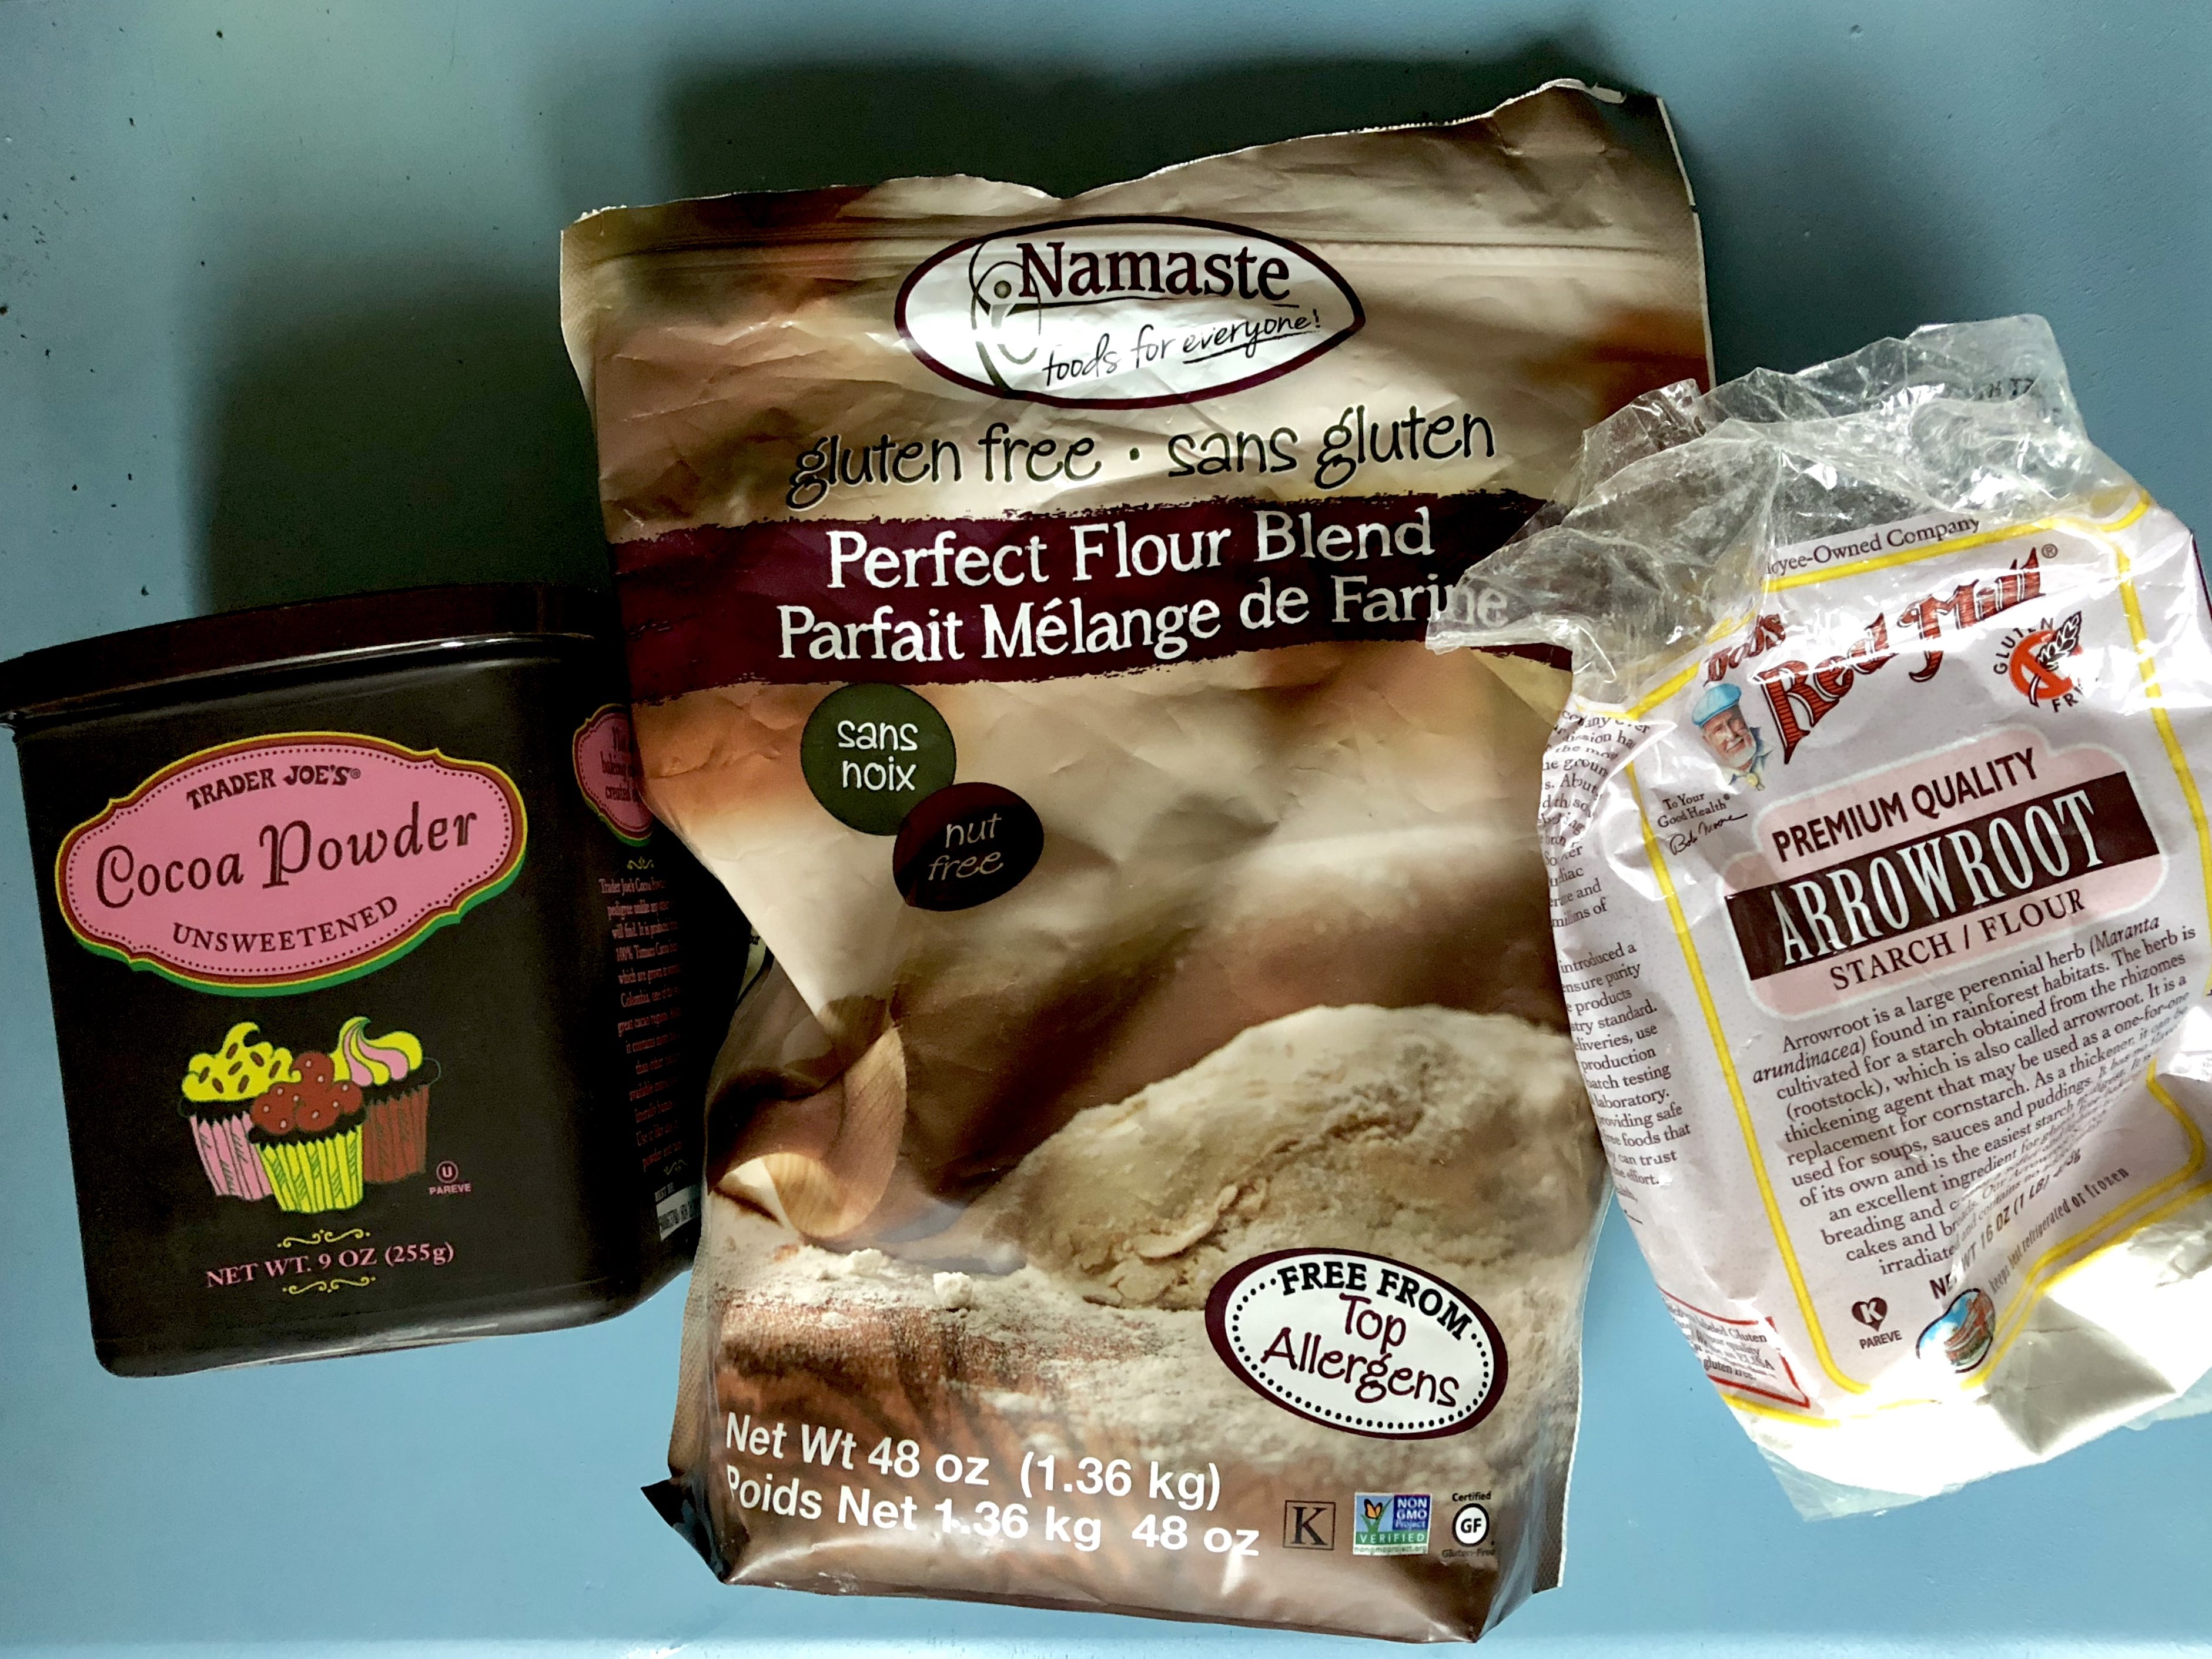 The Three Flours that I use in my Best Ever Gluten Free Chocolate Banana Bread